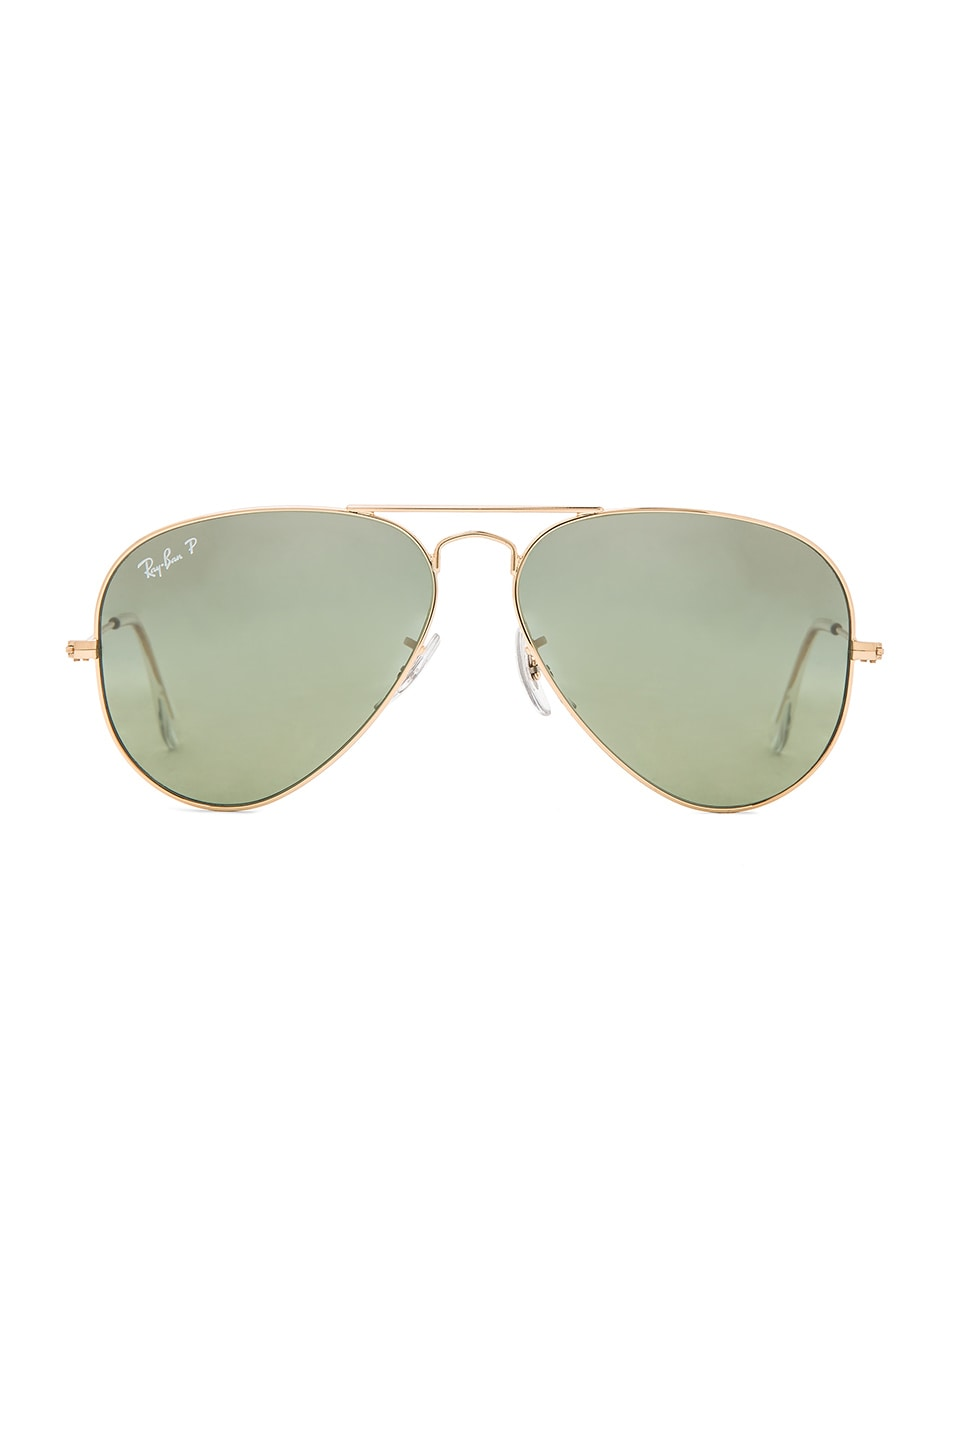 Image 1 of Ray-Ban Aviator Polarized Sunglasses in Green Mirror